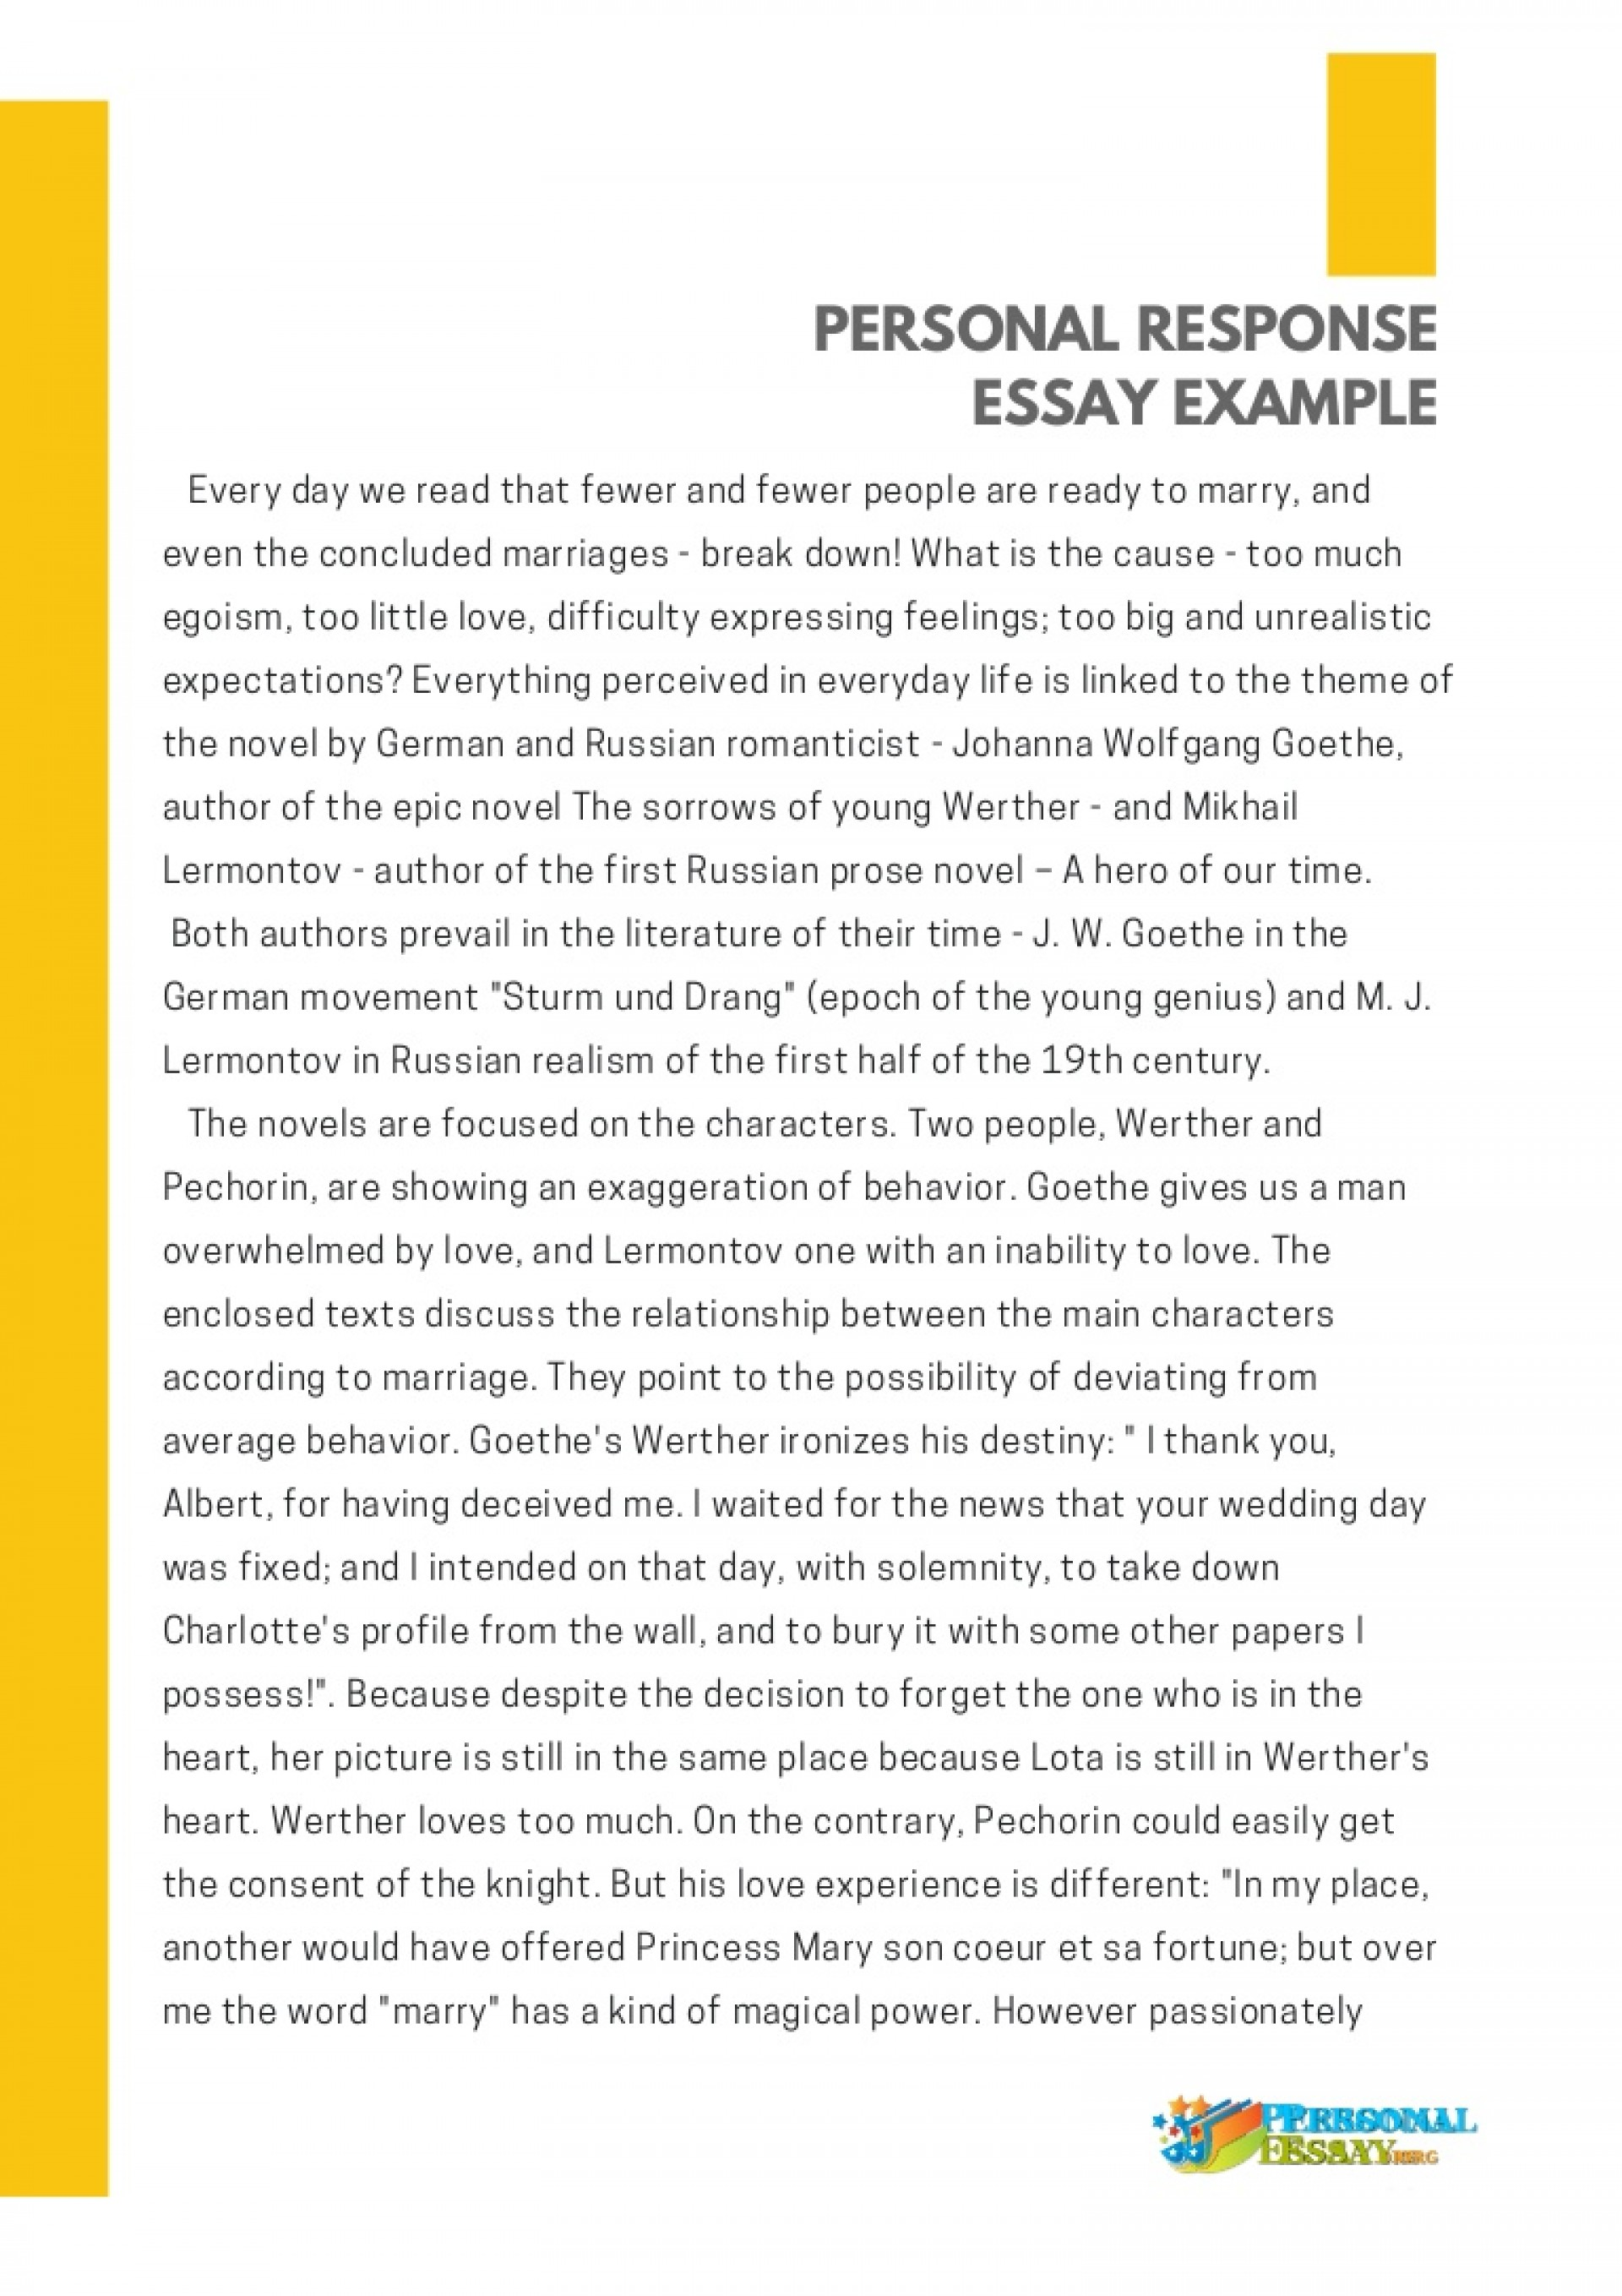 018 Personal Response Essay Example Thumbnail Awful Text Analysis Extended Year 12 1920